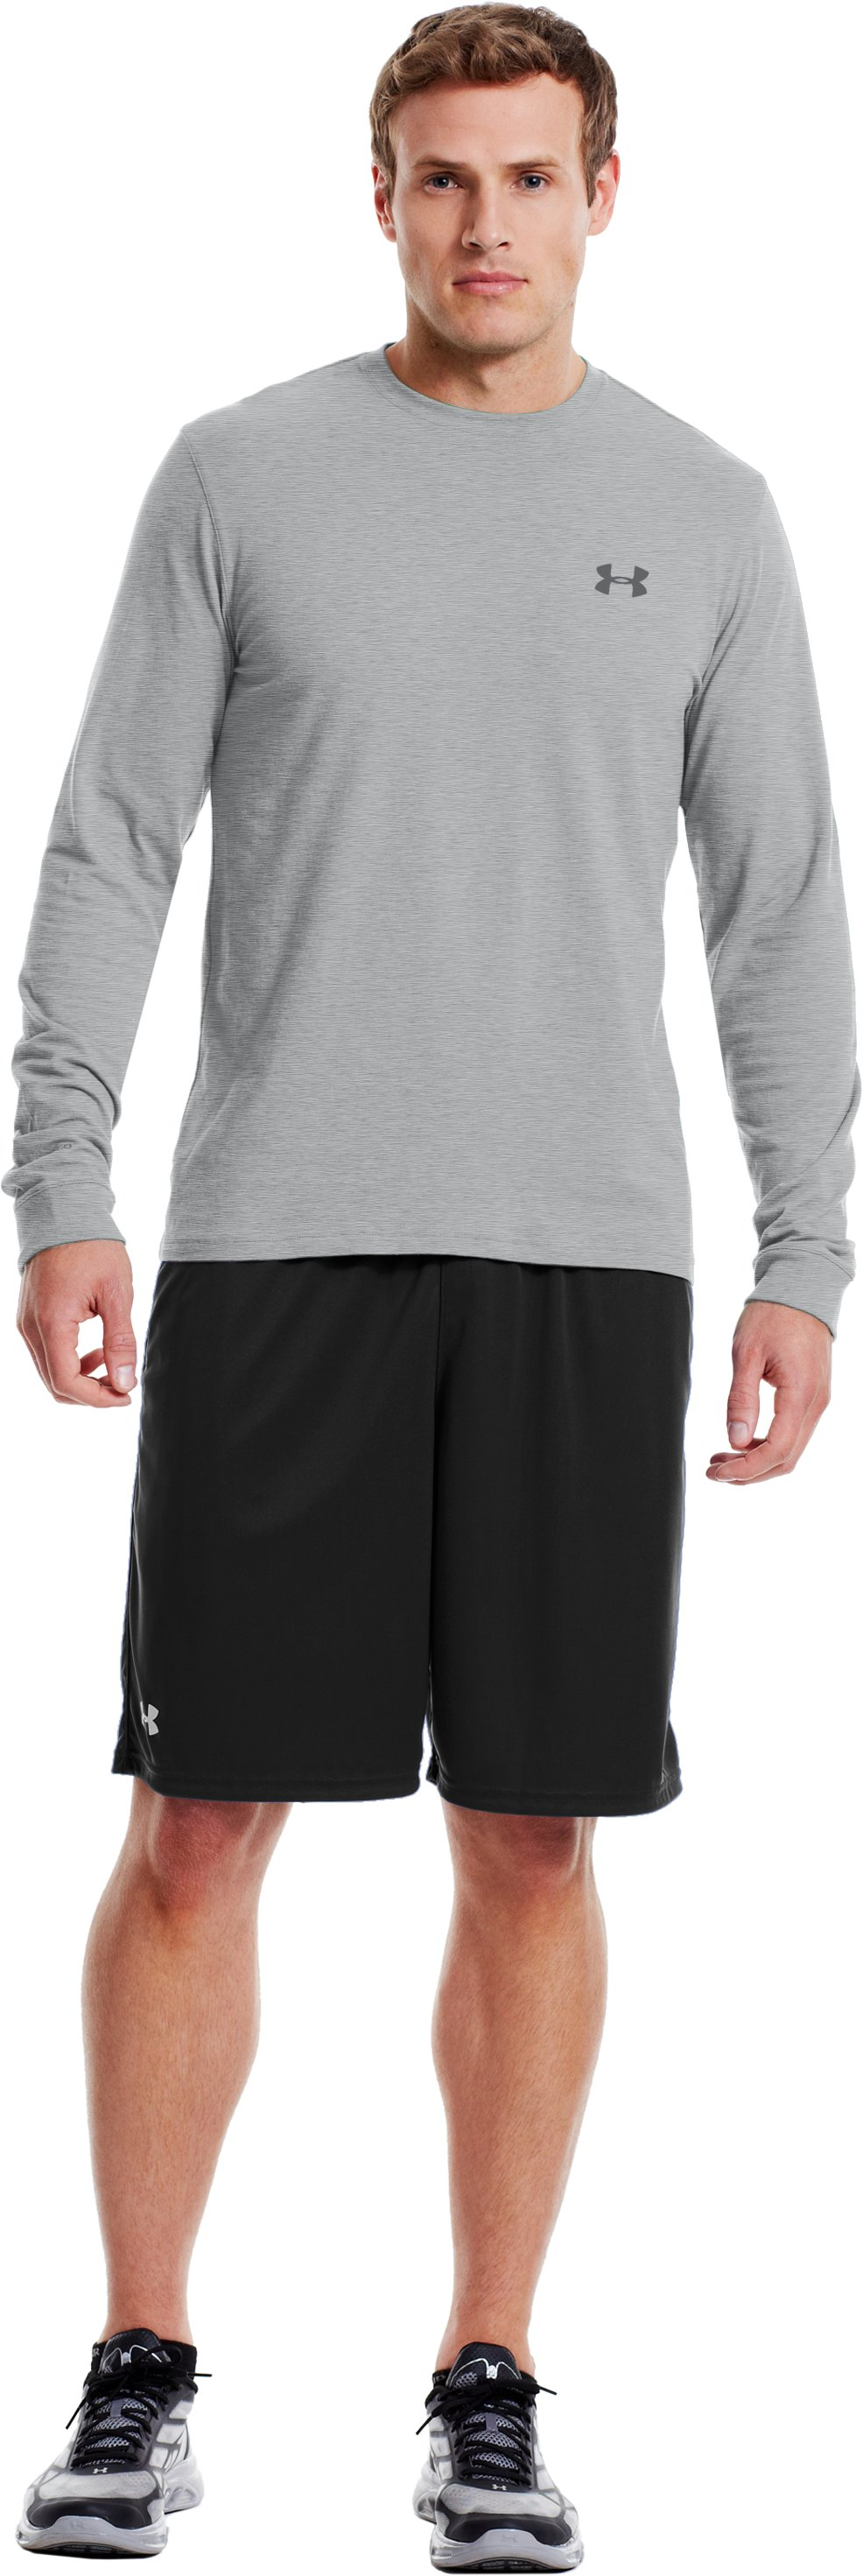 Men's UA Charged Cotton® Long Sleeve T-Shirt, True Gray Heather, zoomed image